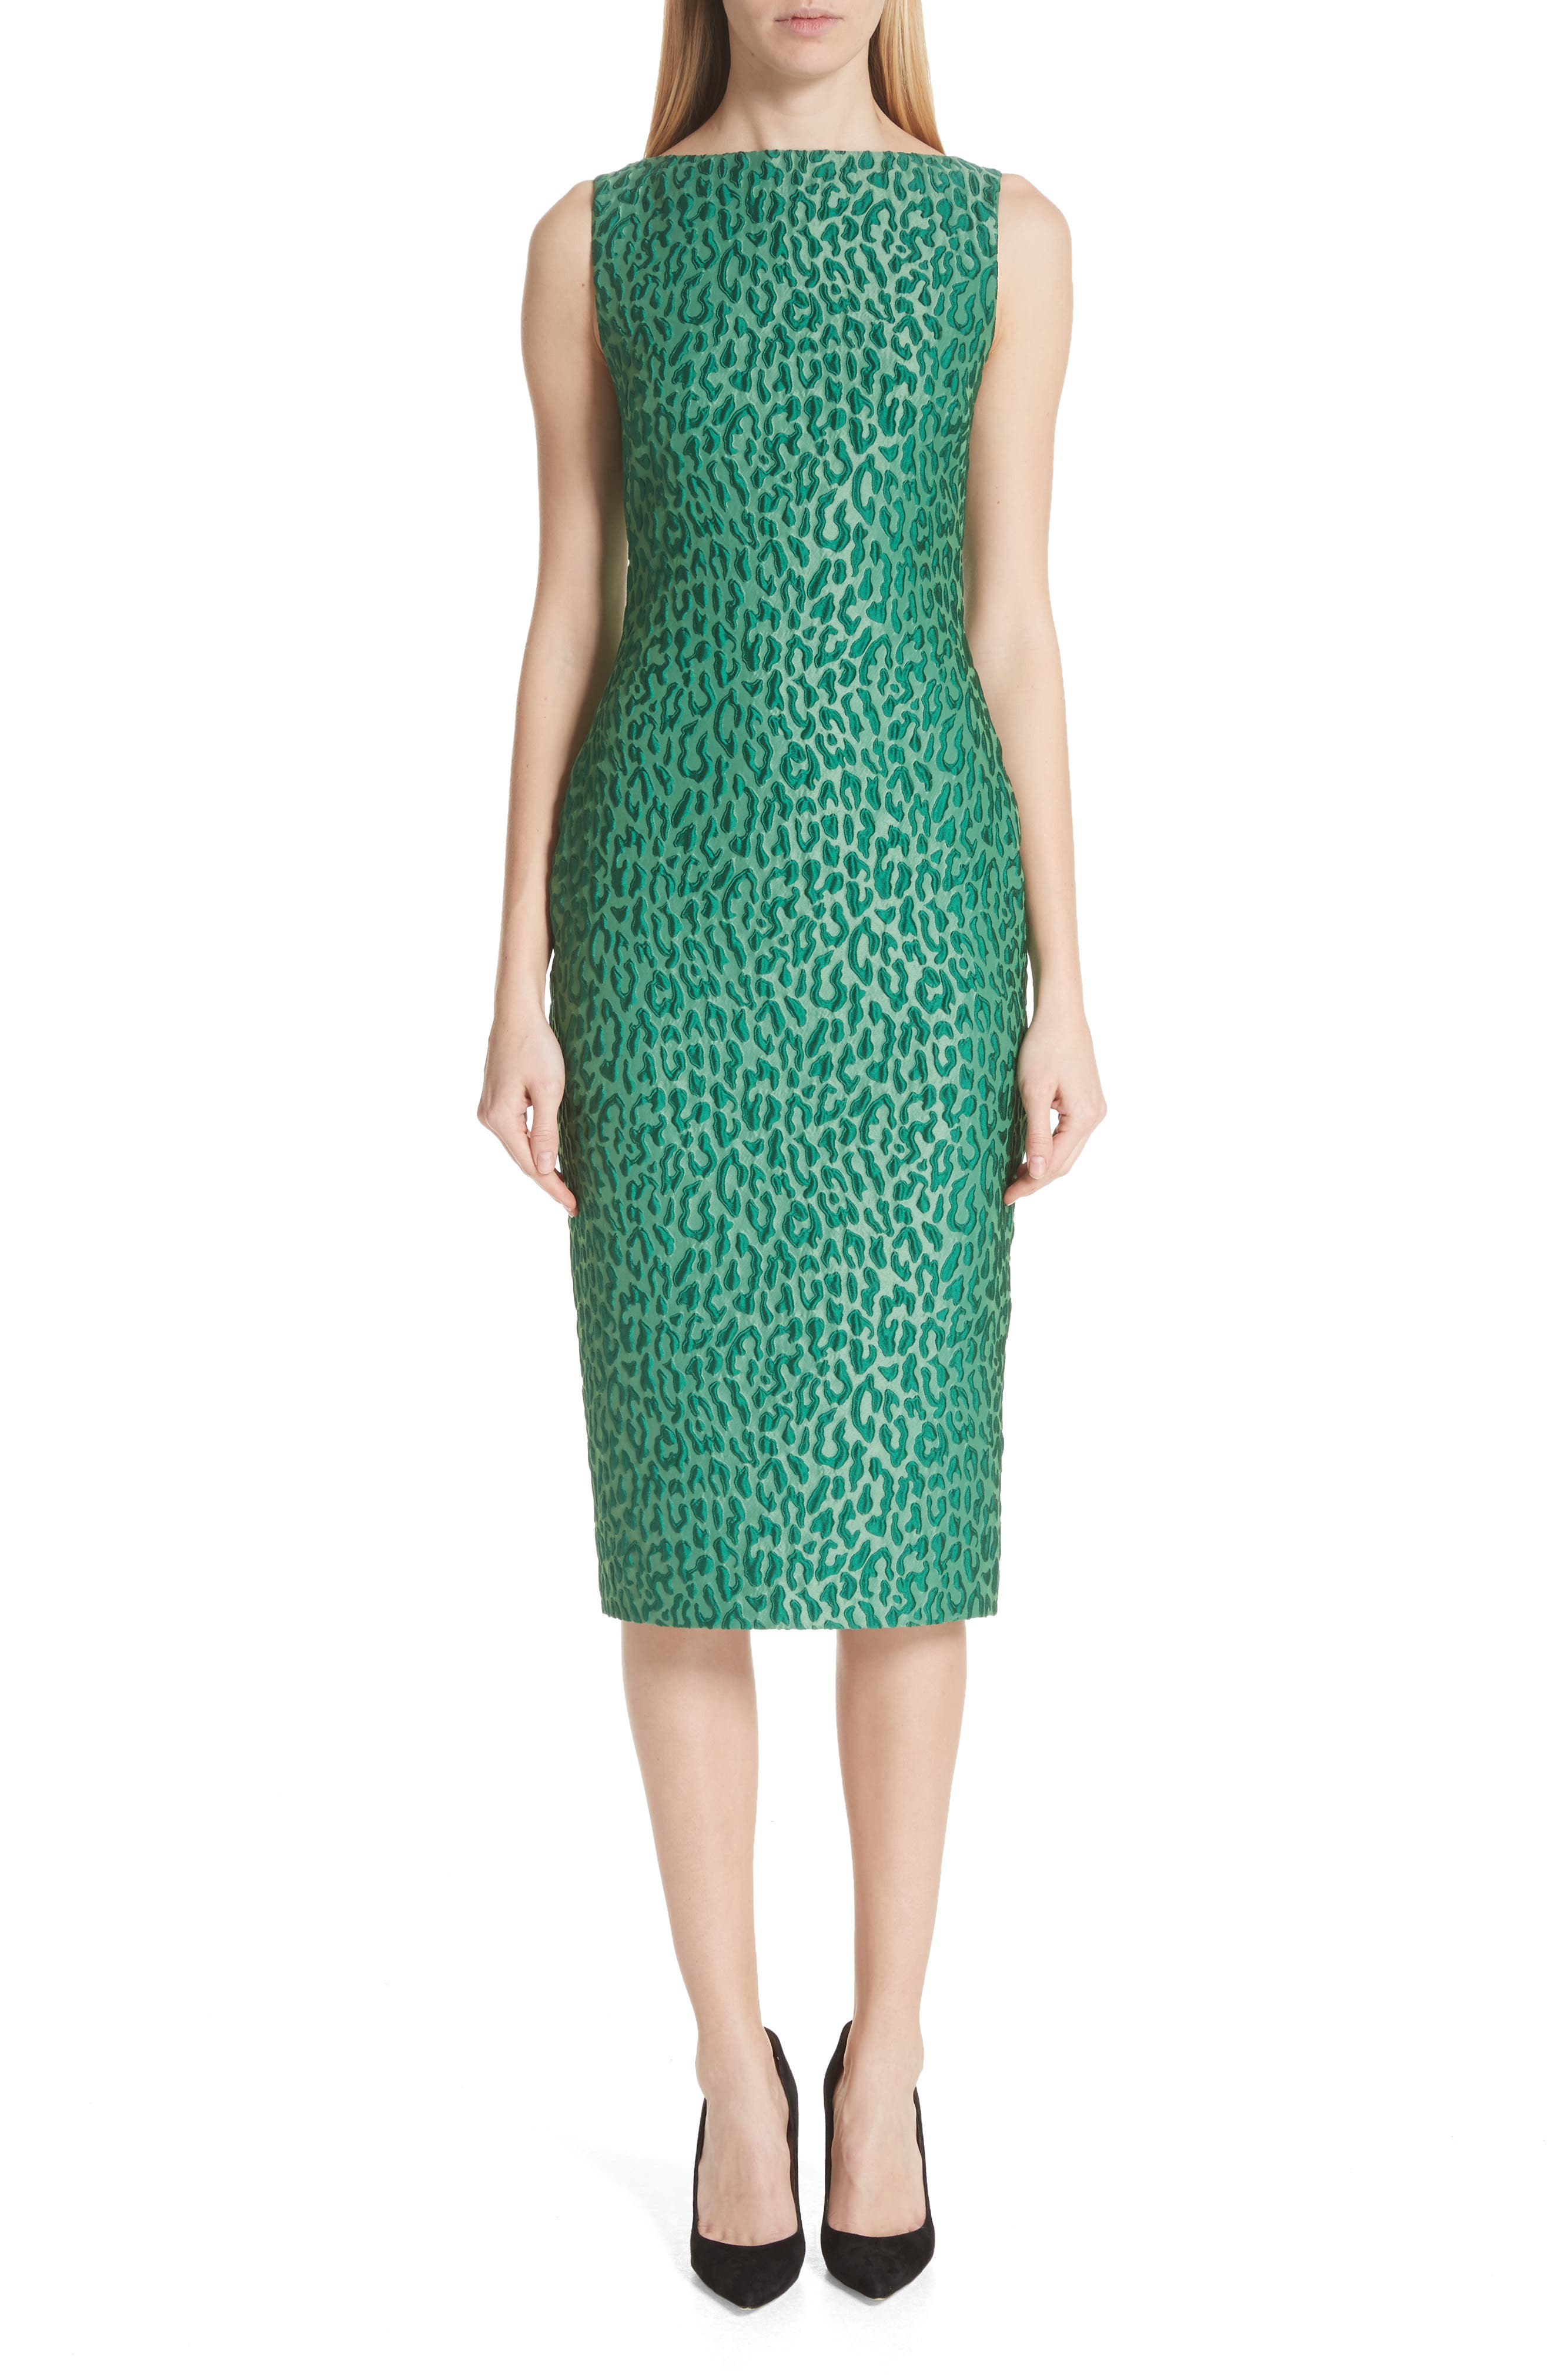 Leopard Jacquard Sheath Dress,                         Main,                         color, Green